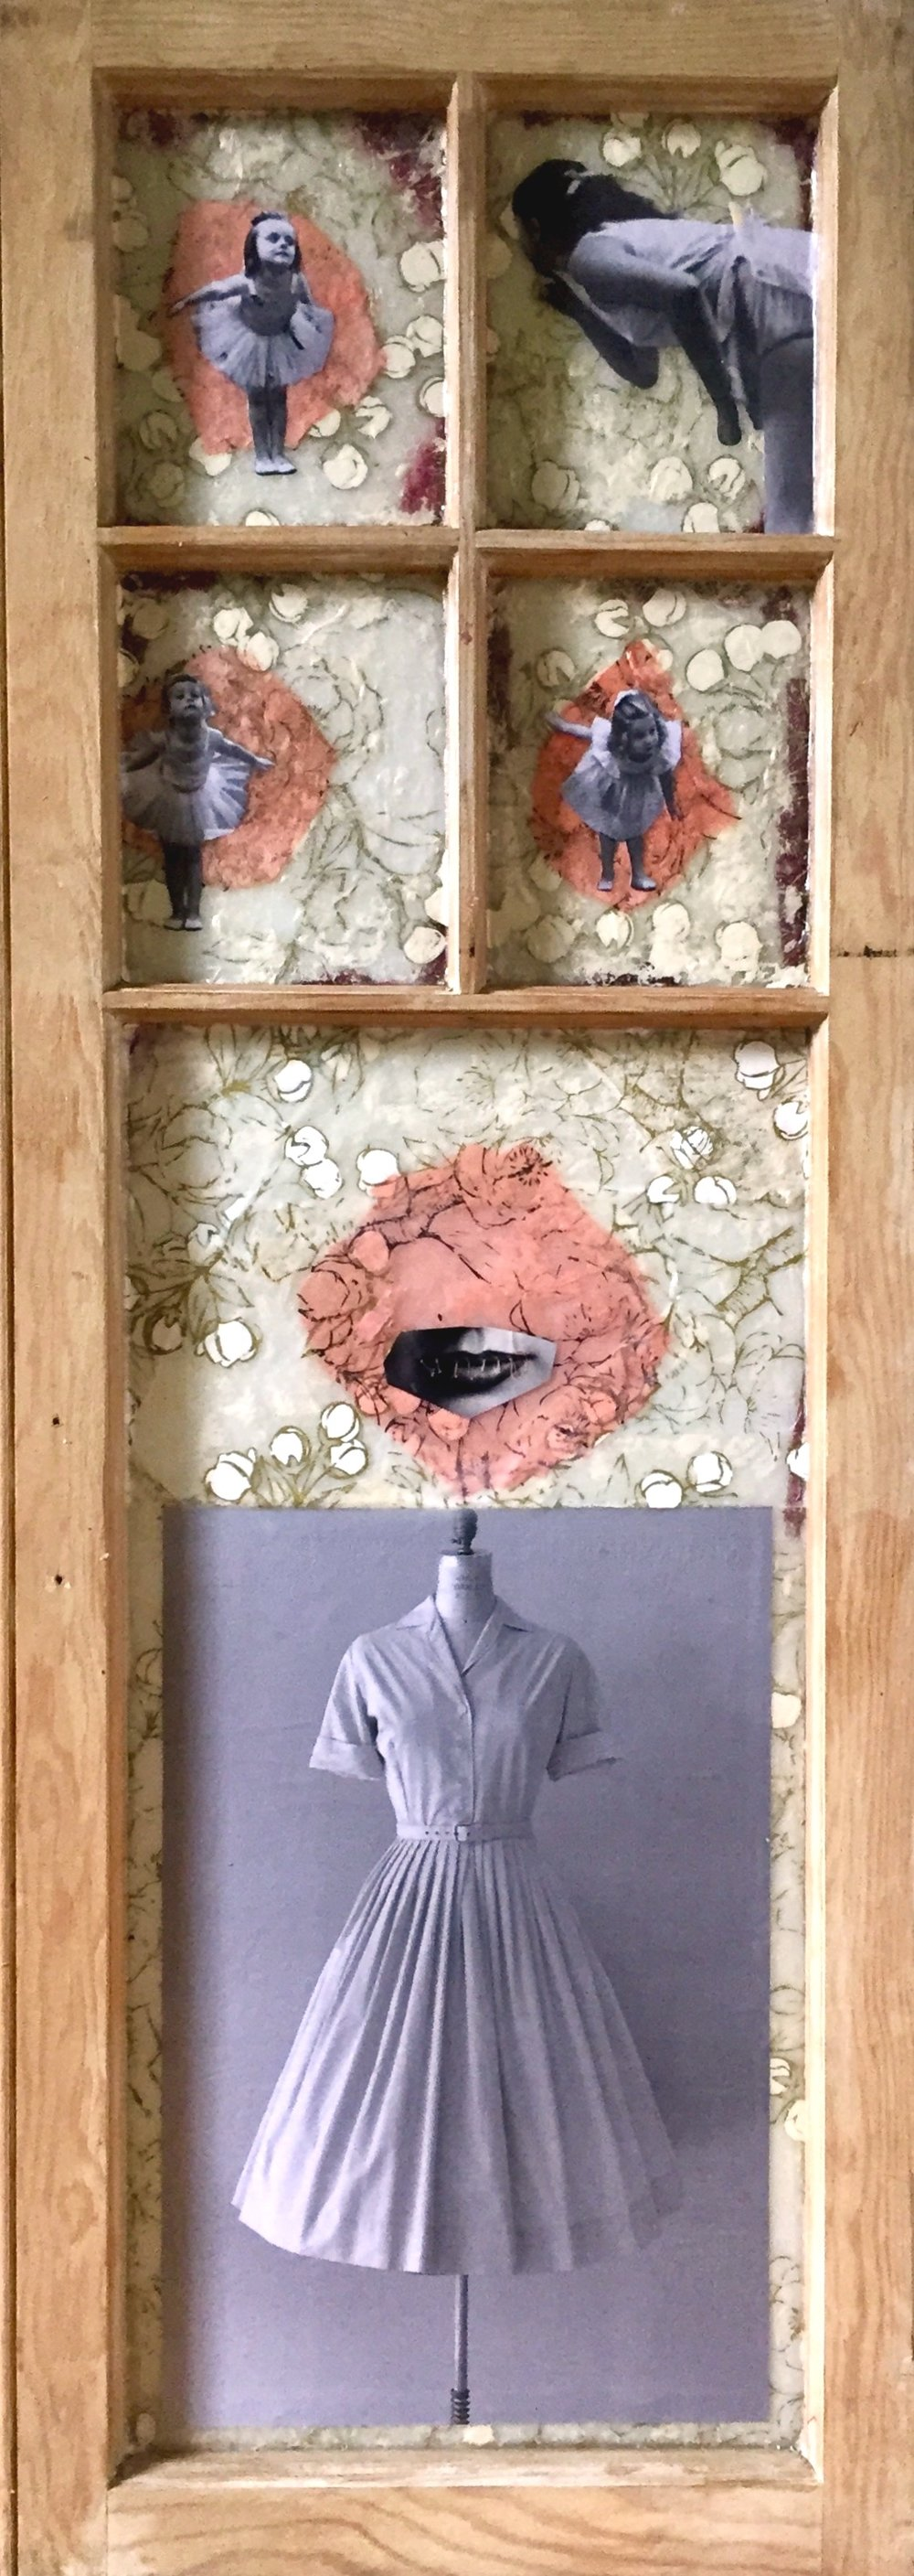 """Shhhh"", collage, 41 x 14"", $800"